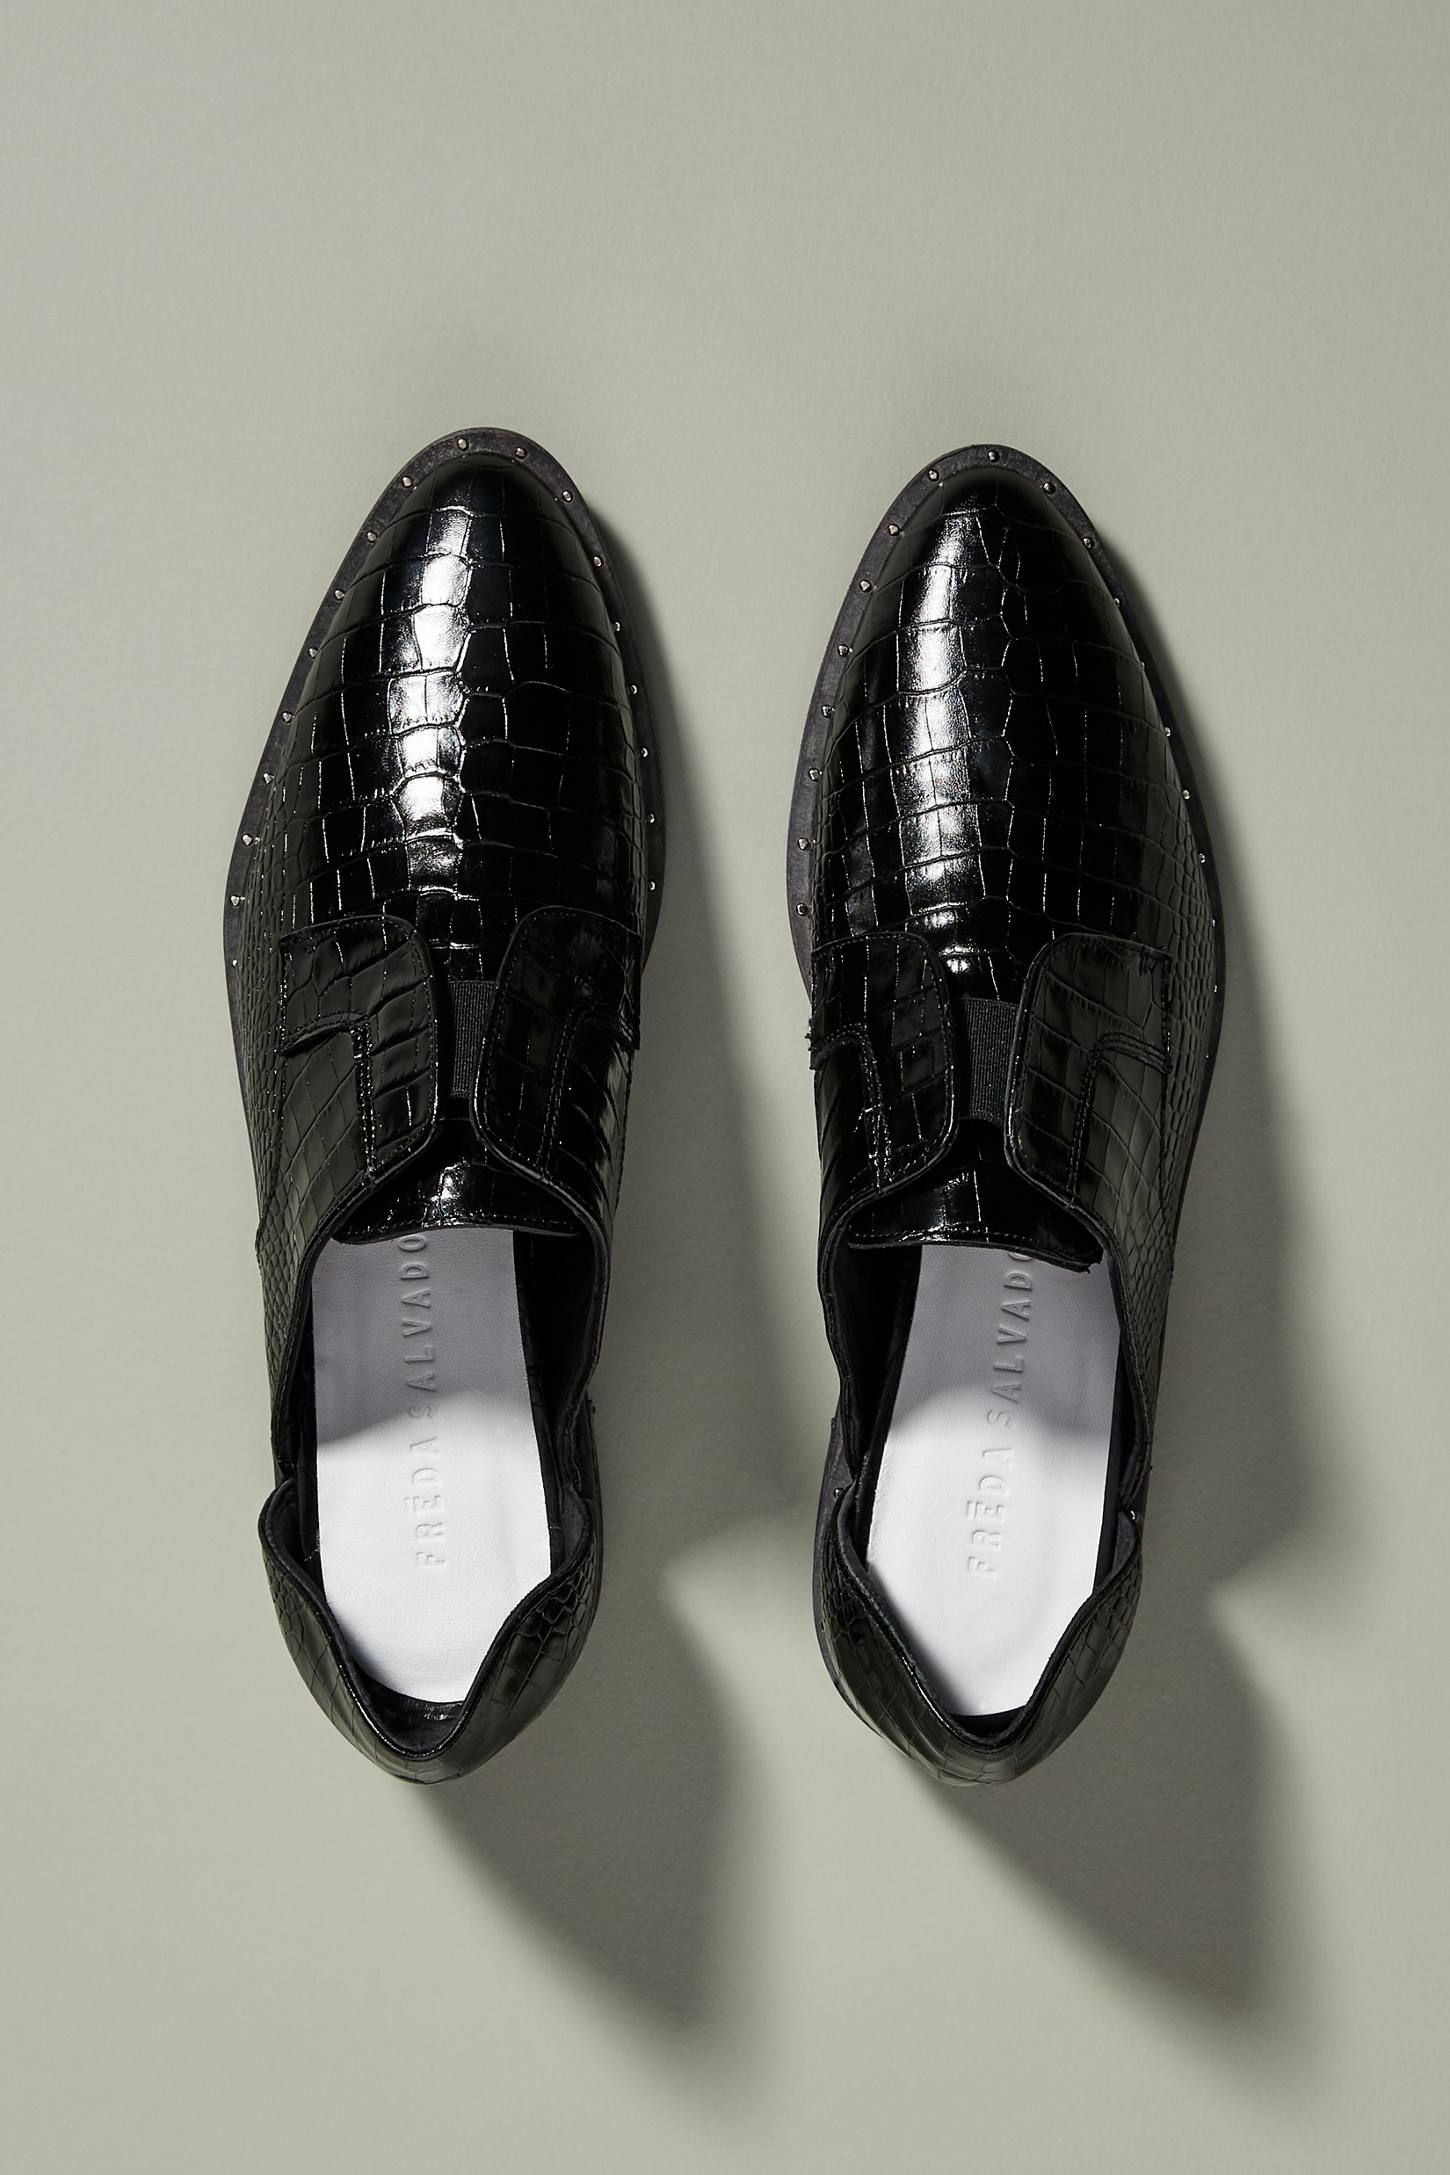 d7ebcf3c50c Freda Salvador Wear D Orsay Oxford Loafers in 2019